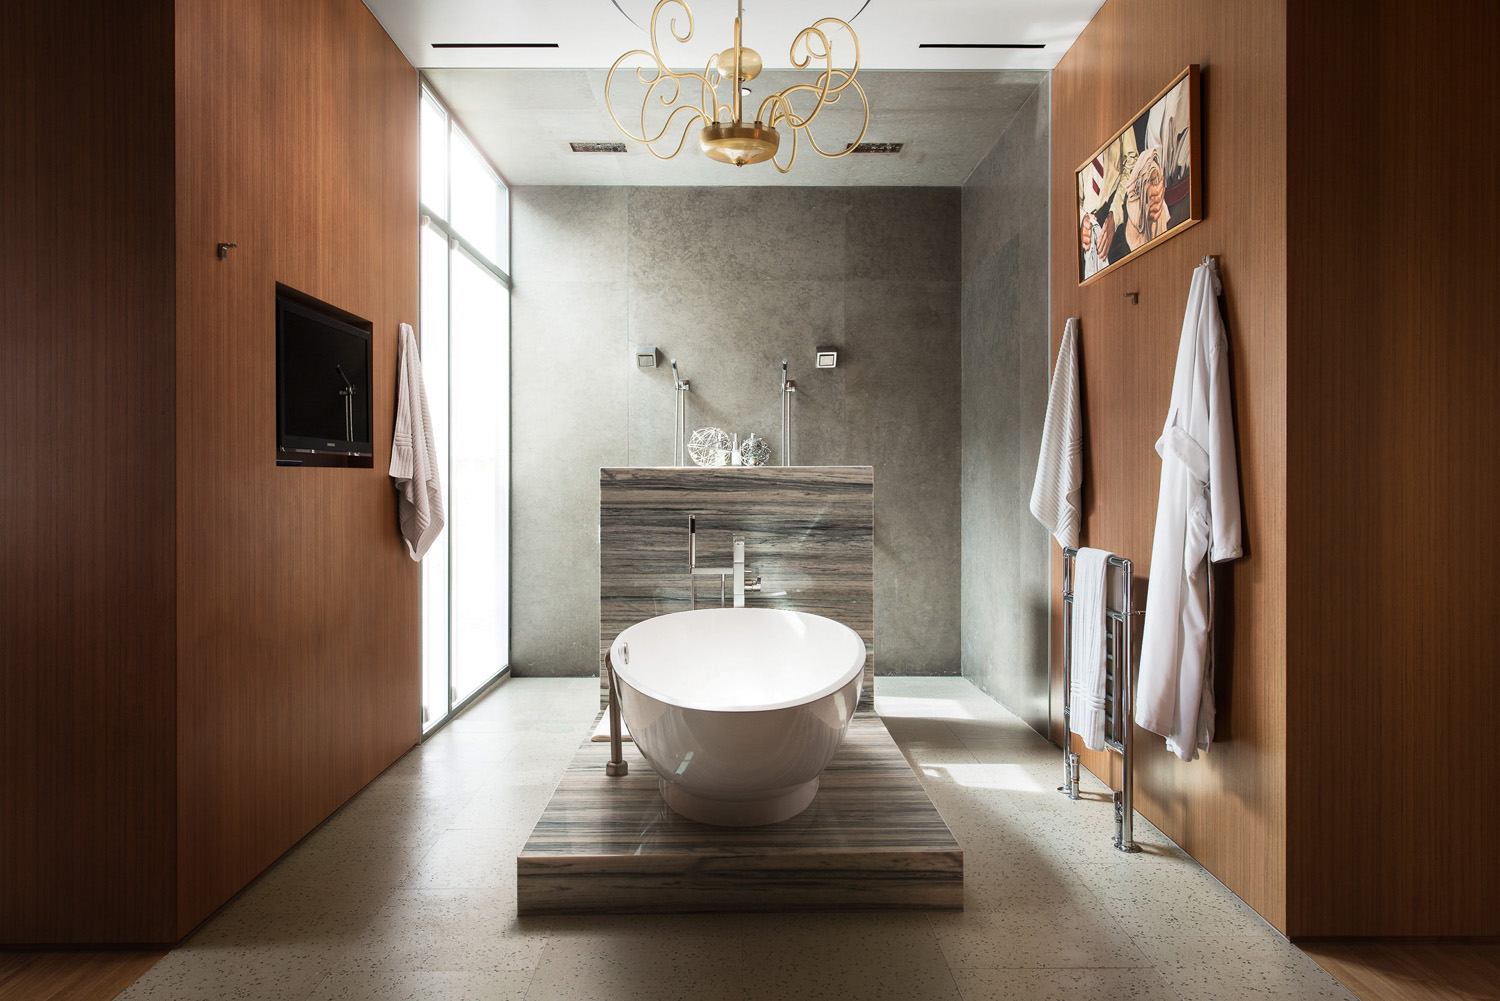 A luxe bathroom features a freestanding tub to soak the day away